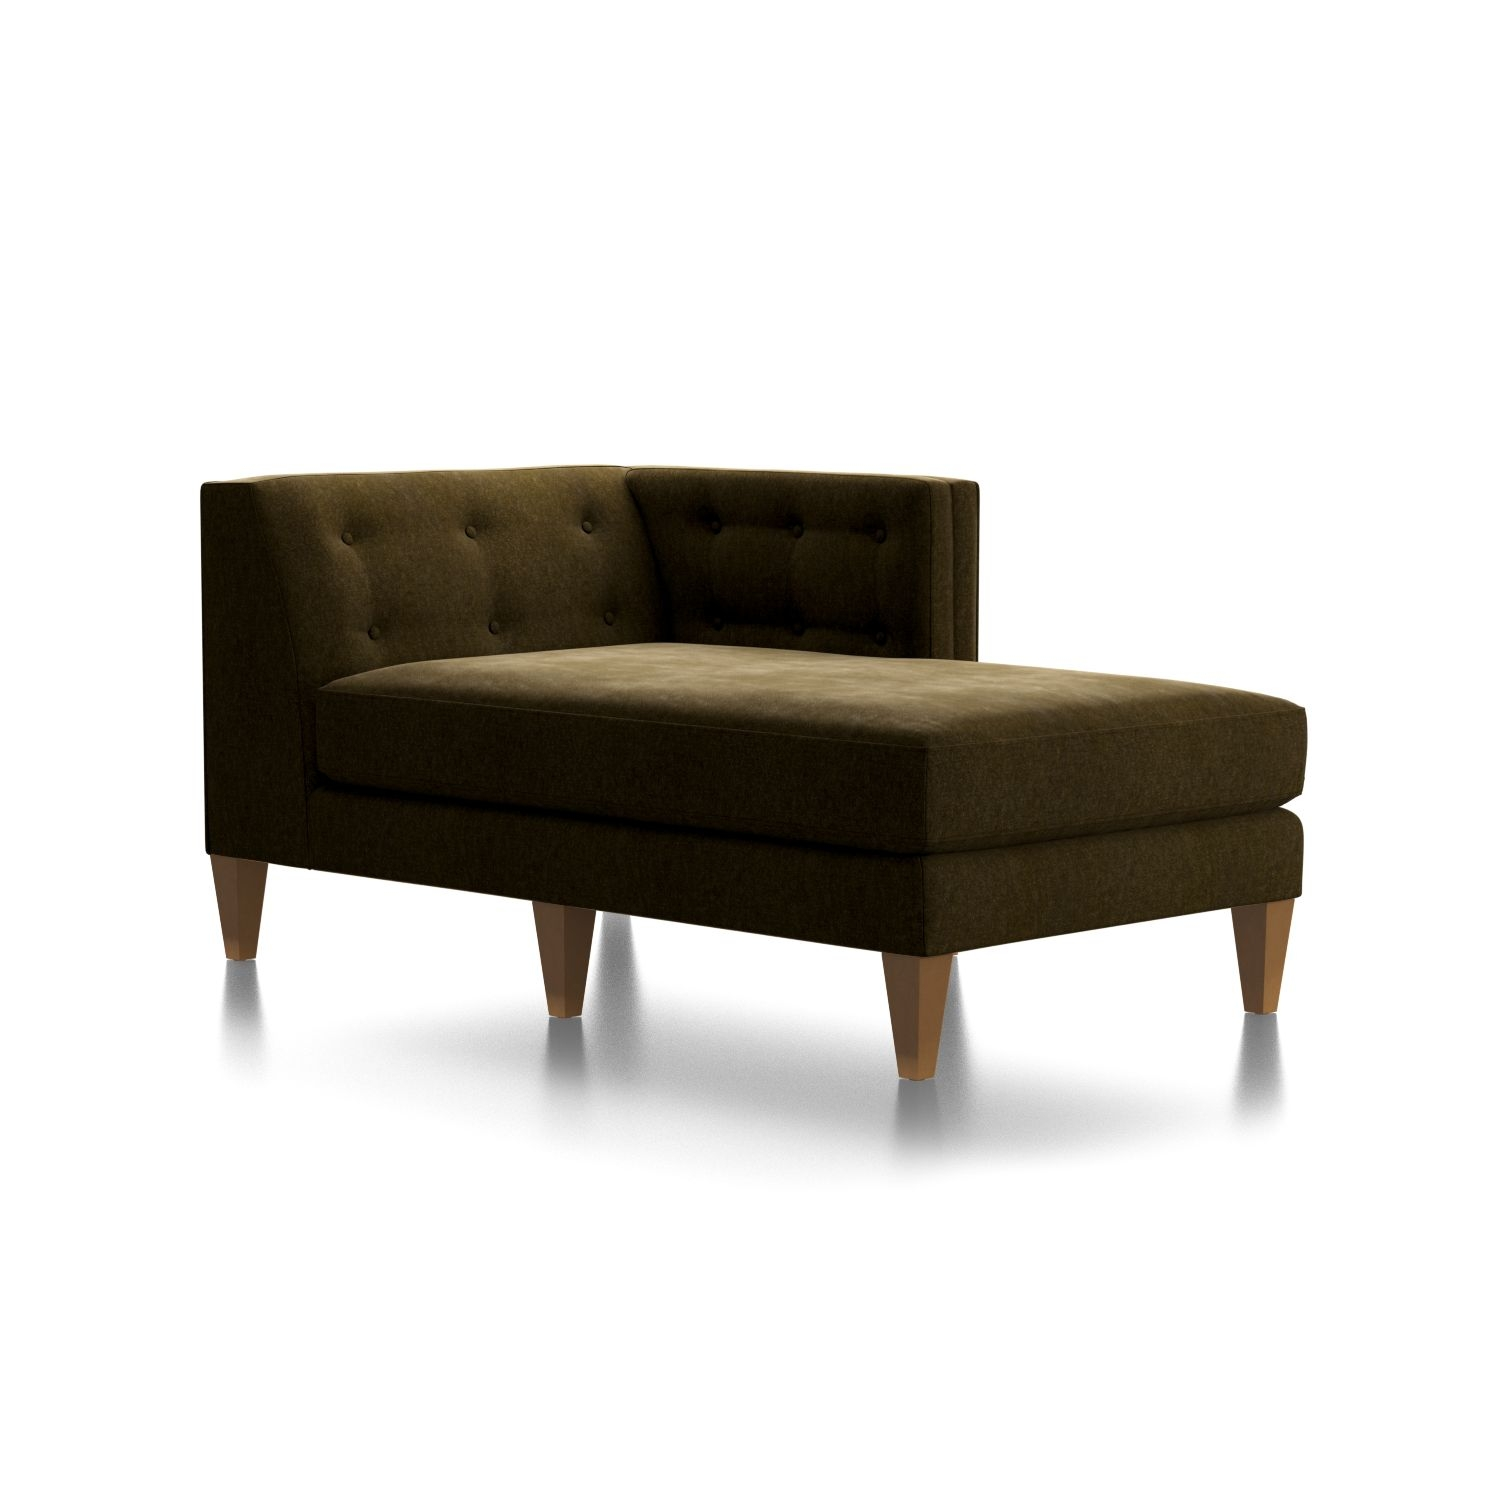 Aidan Velvet Right Arm Tufted Chaise + Reviews | Crate And Barrel With Regard To Aidan 4 Piece Sectionals (Image 7 of 25)